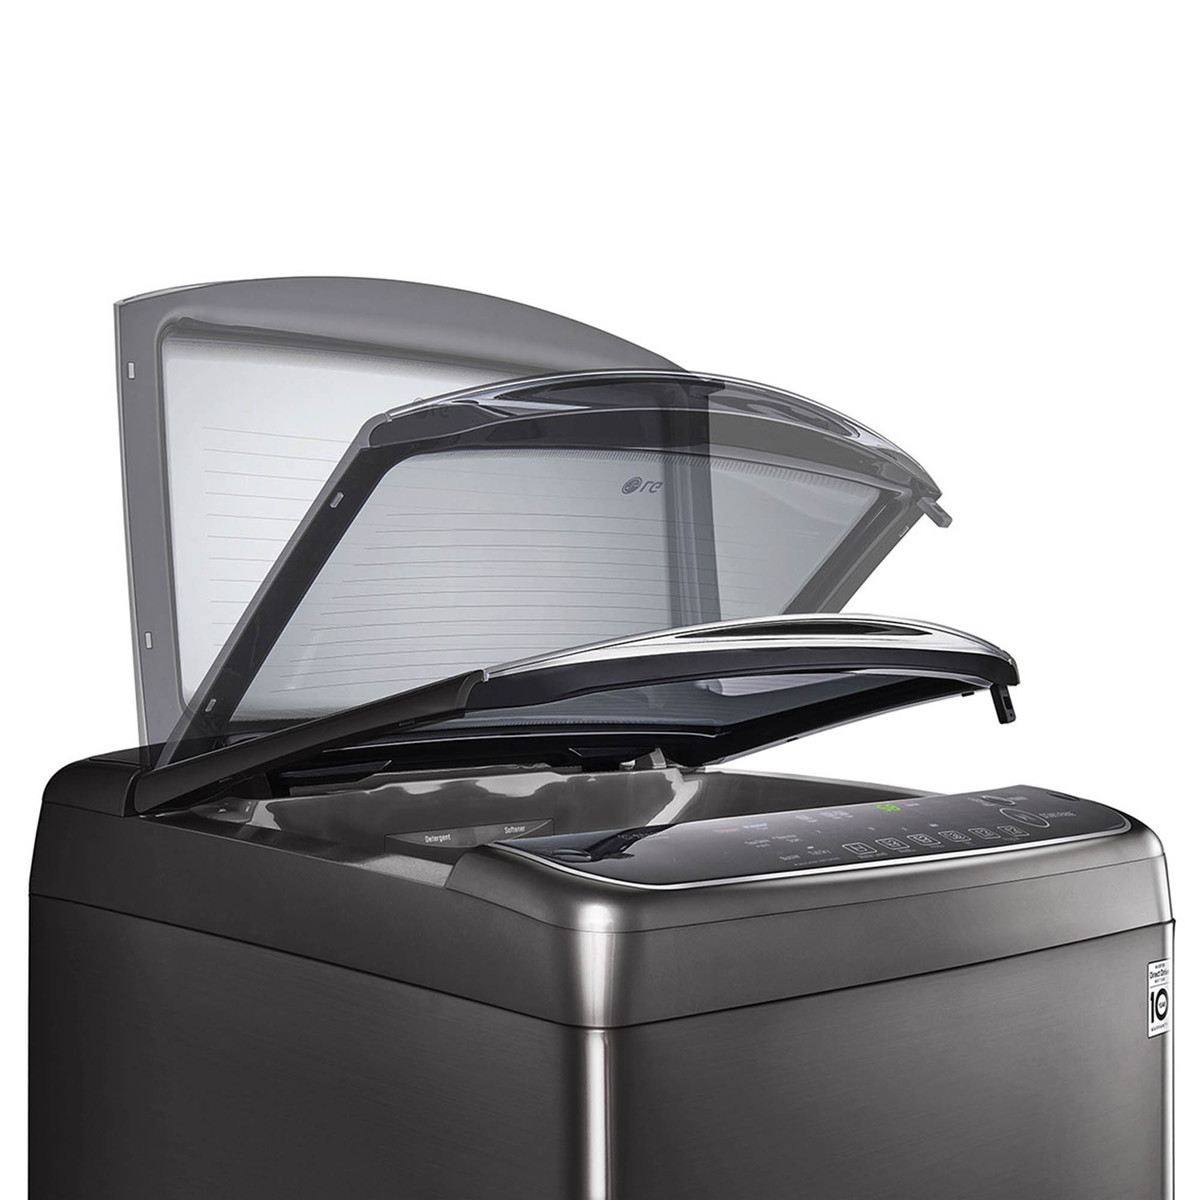 LG Top Load Washing Machine T1693EFHSKL 16KG, TurboWash3D™, Steam™, Auto Tub Clean